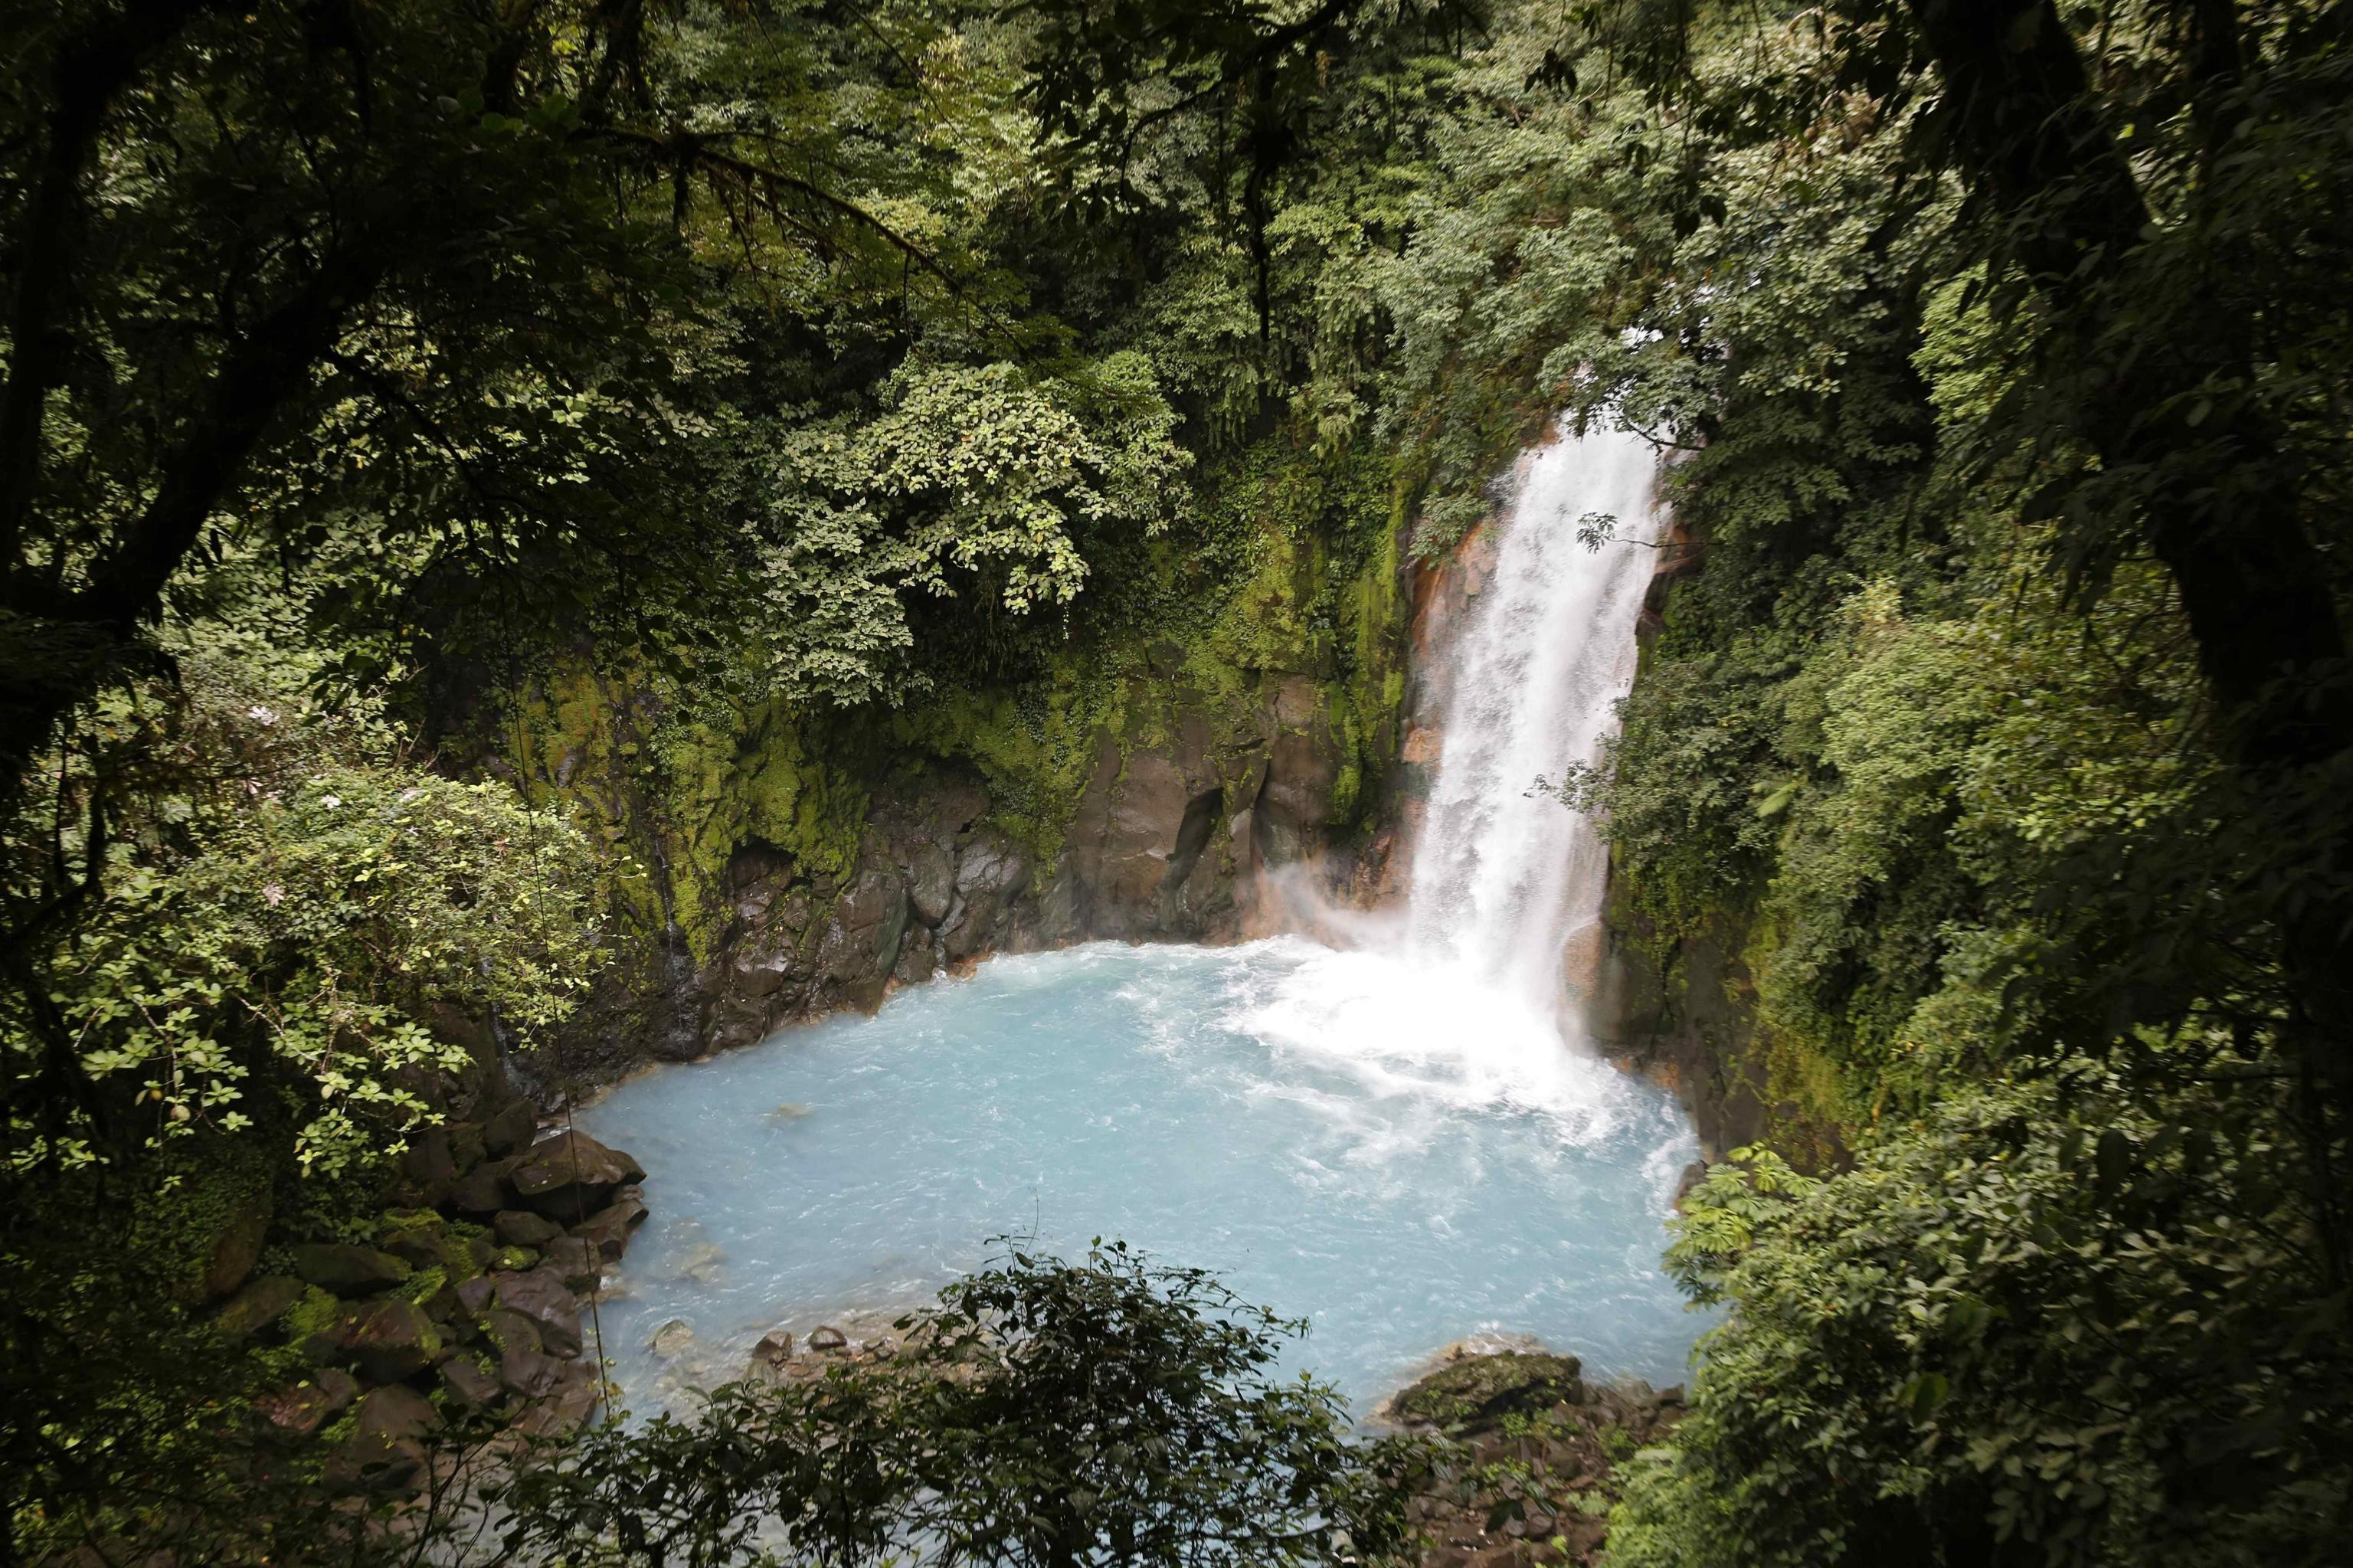 International Day of National Parks in Costa Rica